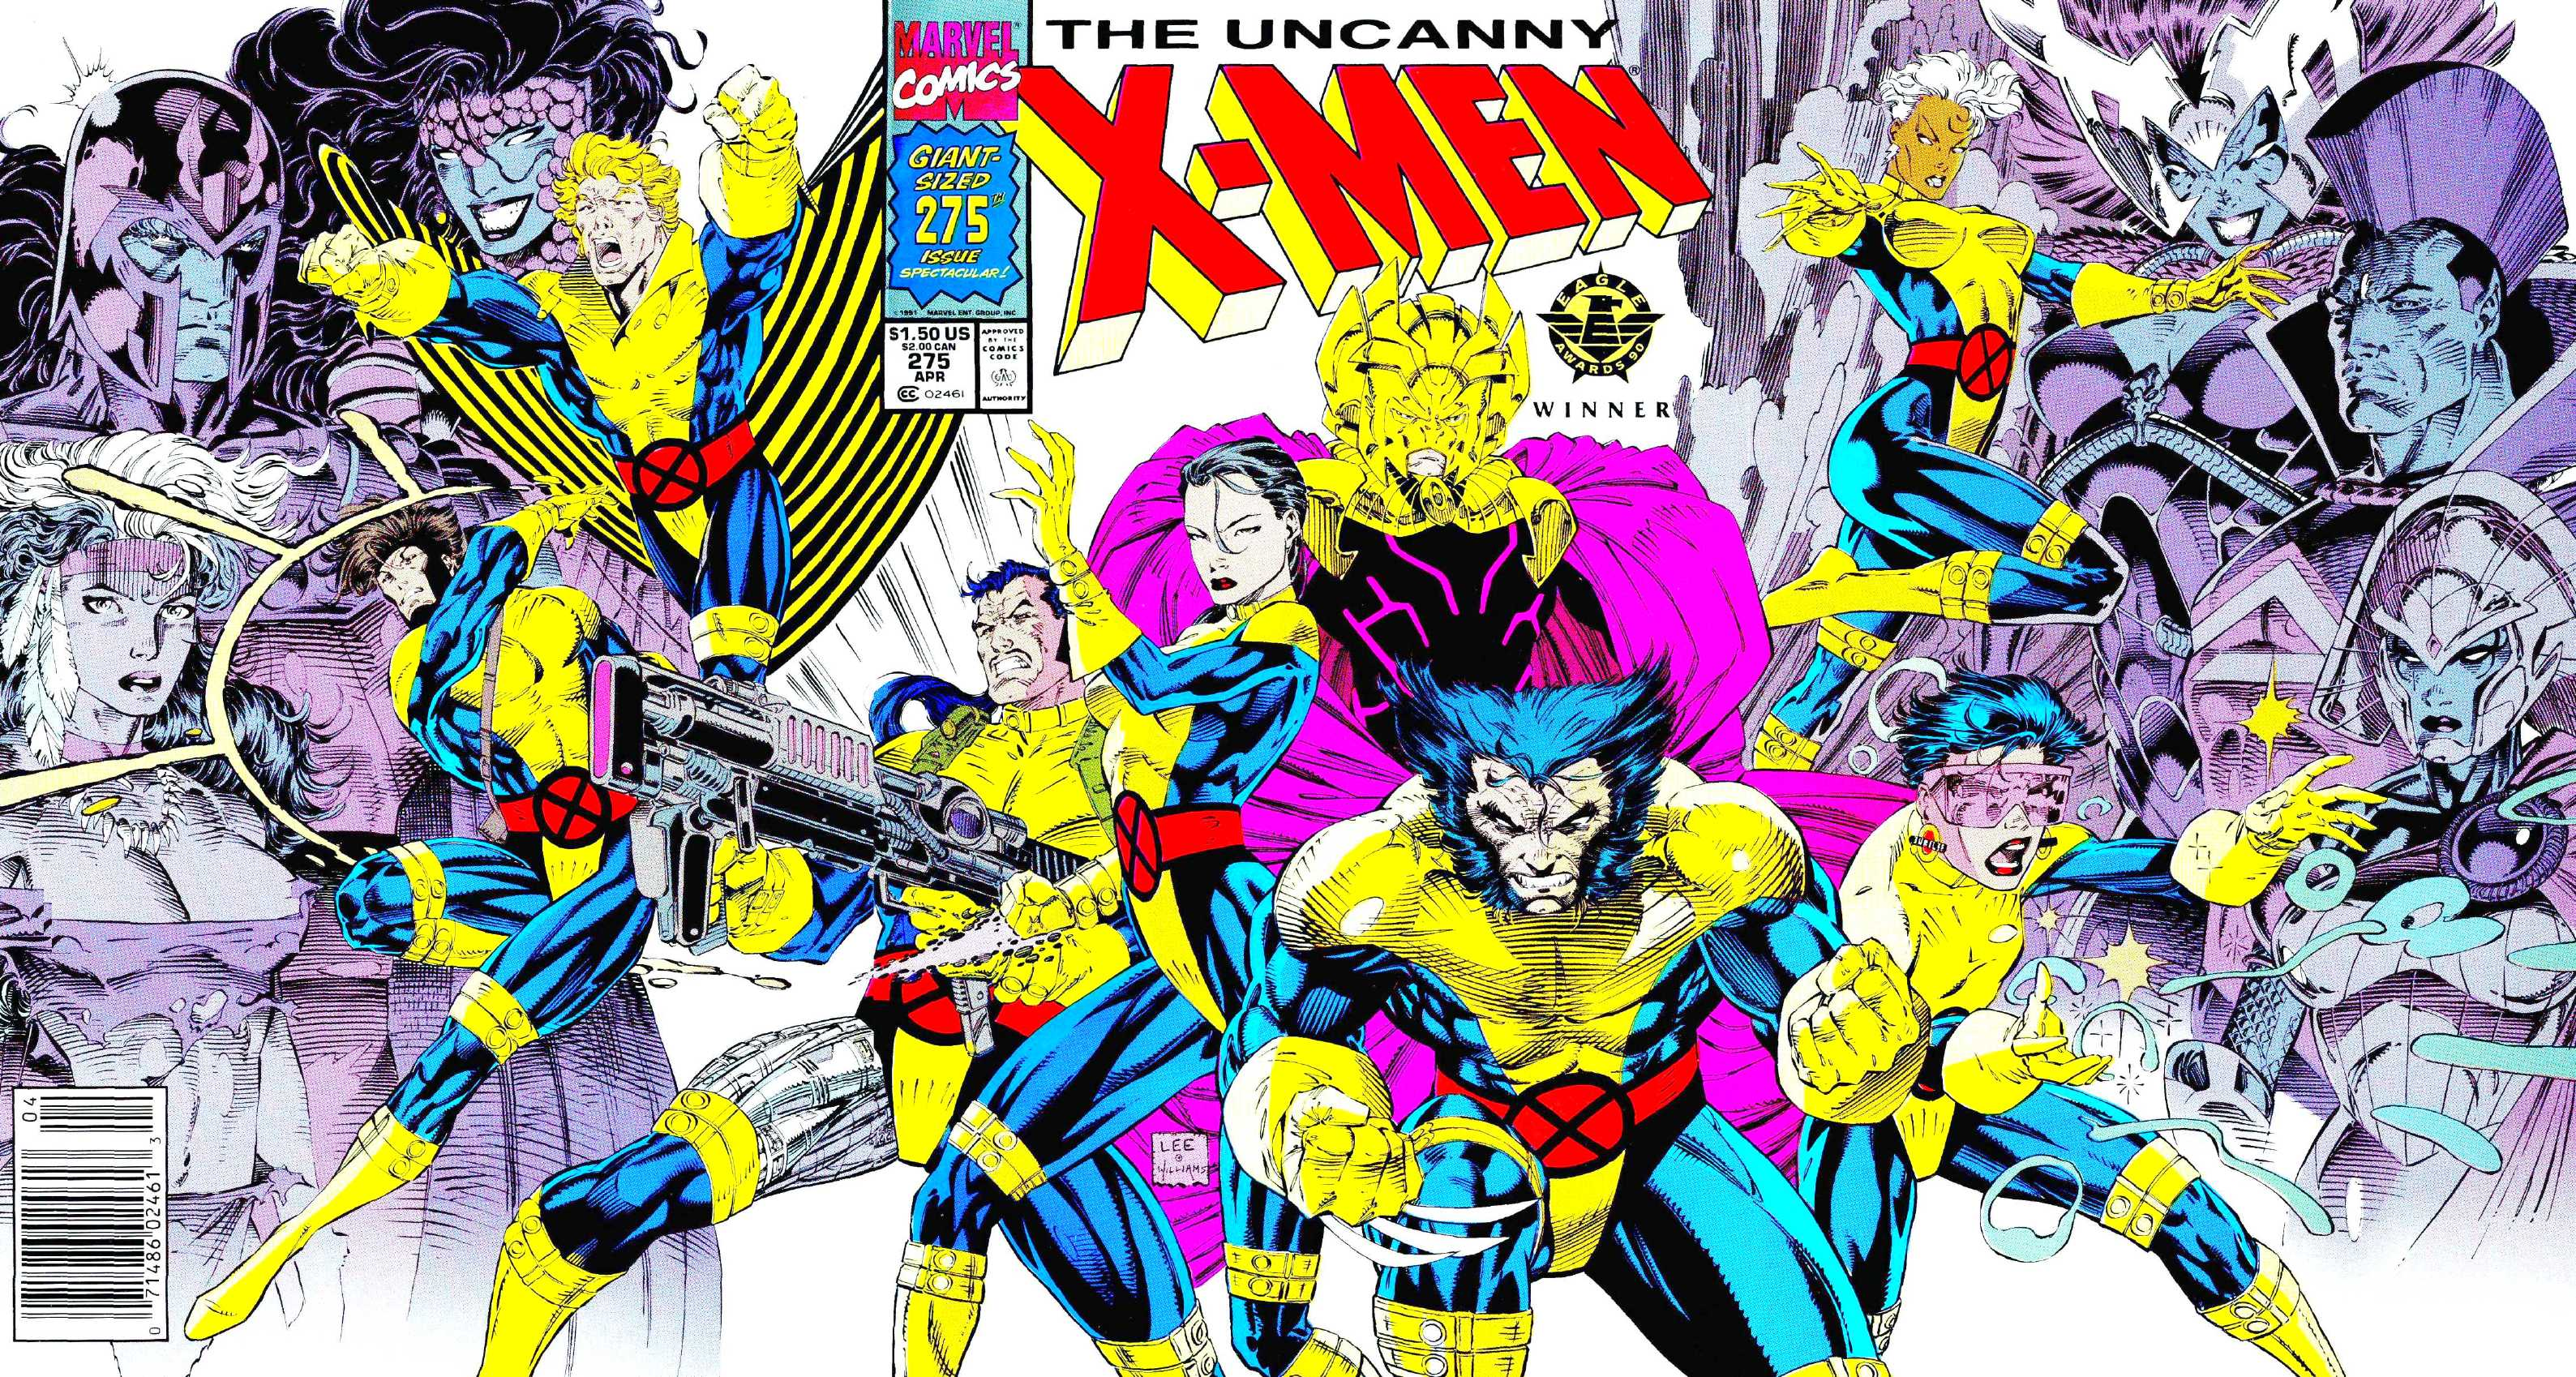 Uncanny_X-Men_Vol_1_275_Full_Cover